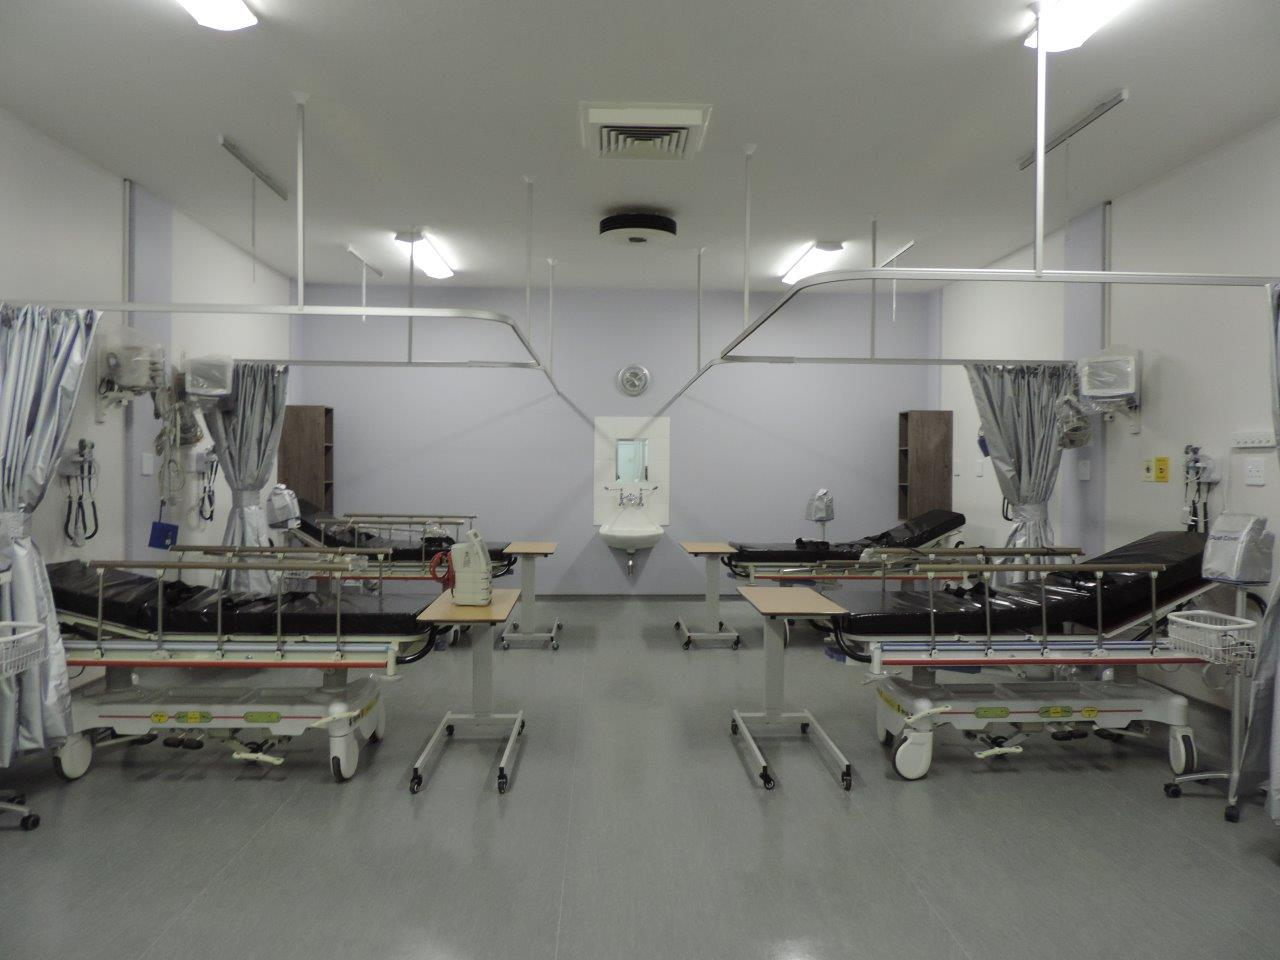 Gauteng hospital private wards owe R56 million